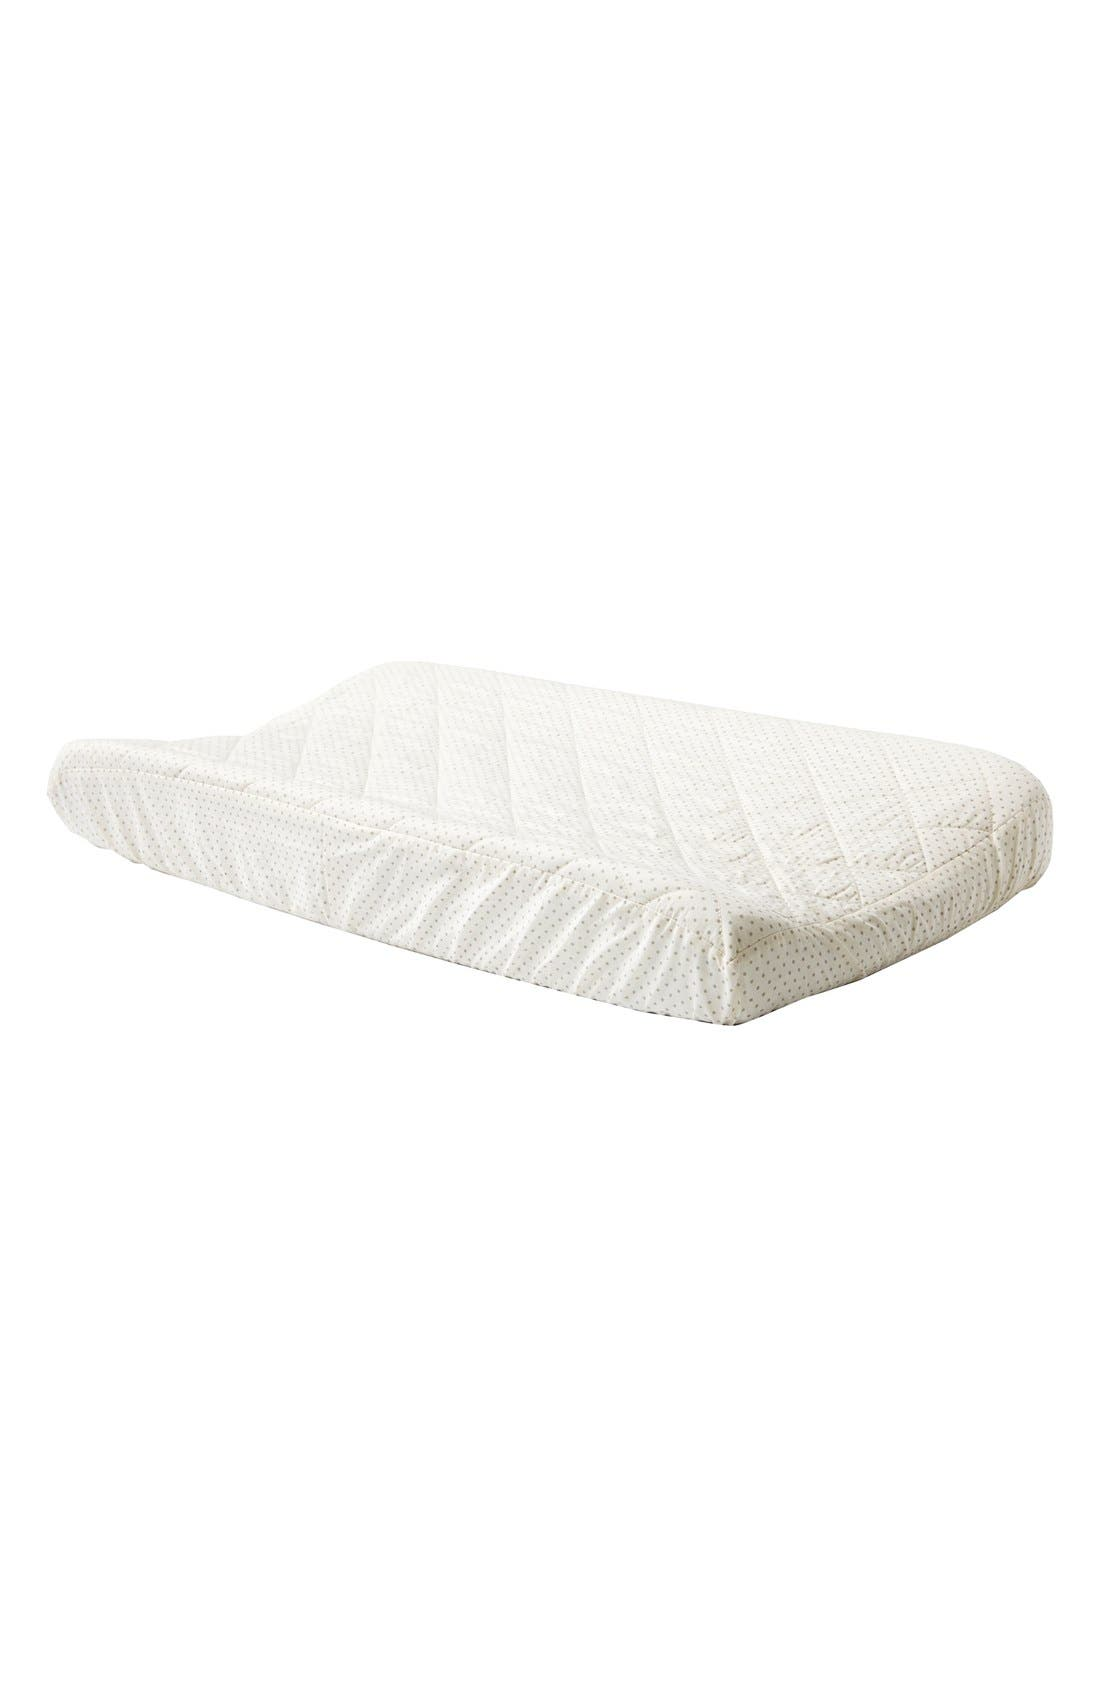 Brushed Cotton Changing Pad Cover,                             Main thumbnail 2, color,